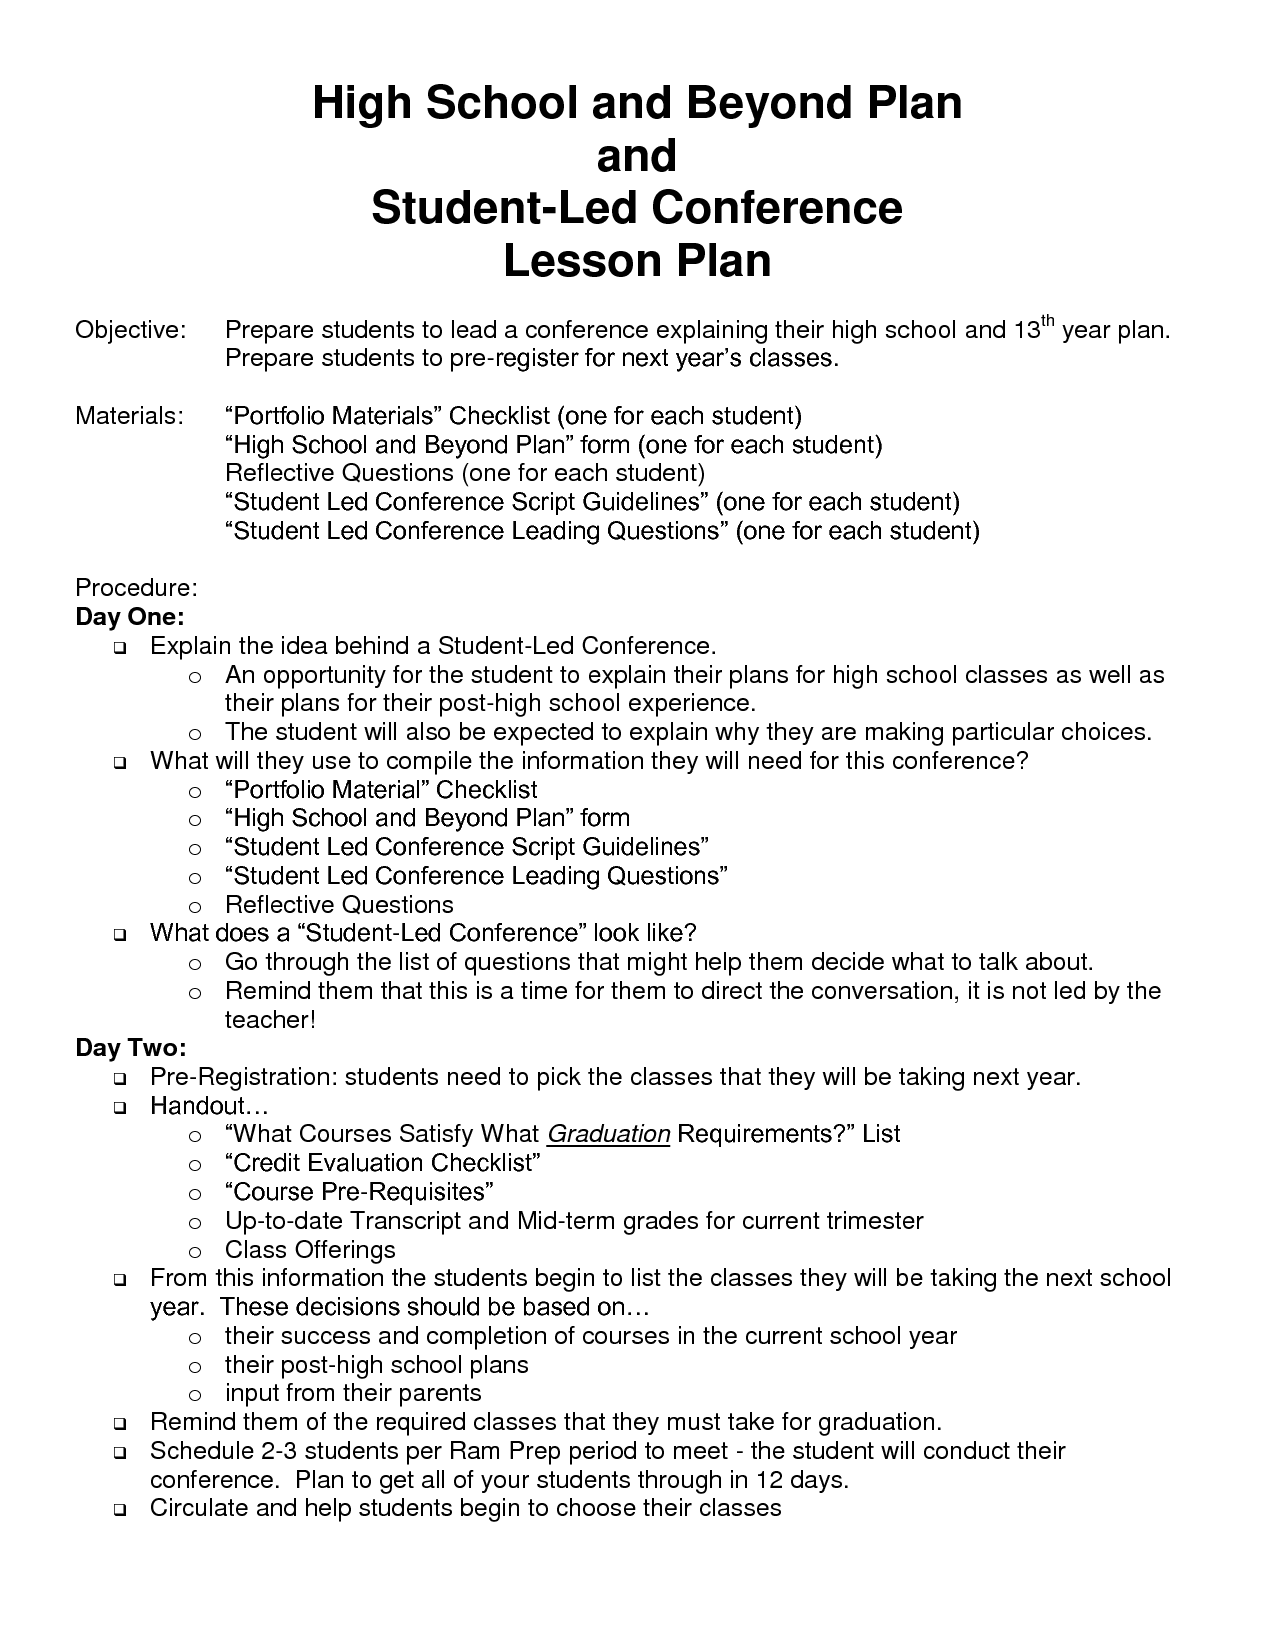 Resume Experience Example Examples Of Resume Cover Letters For Dental Assistantexamples Of